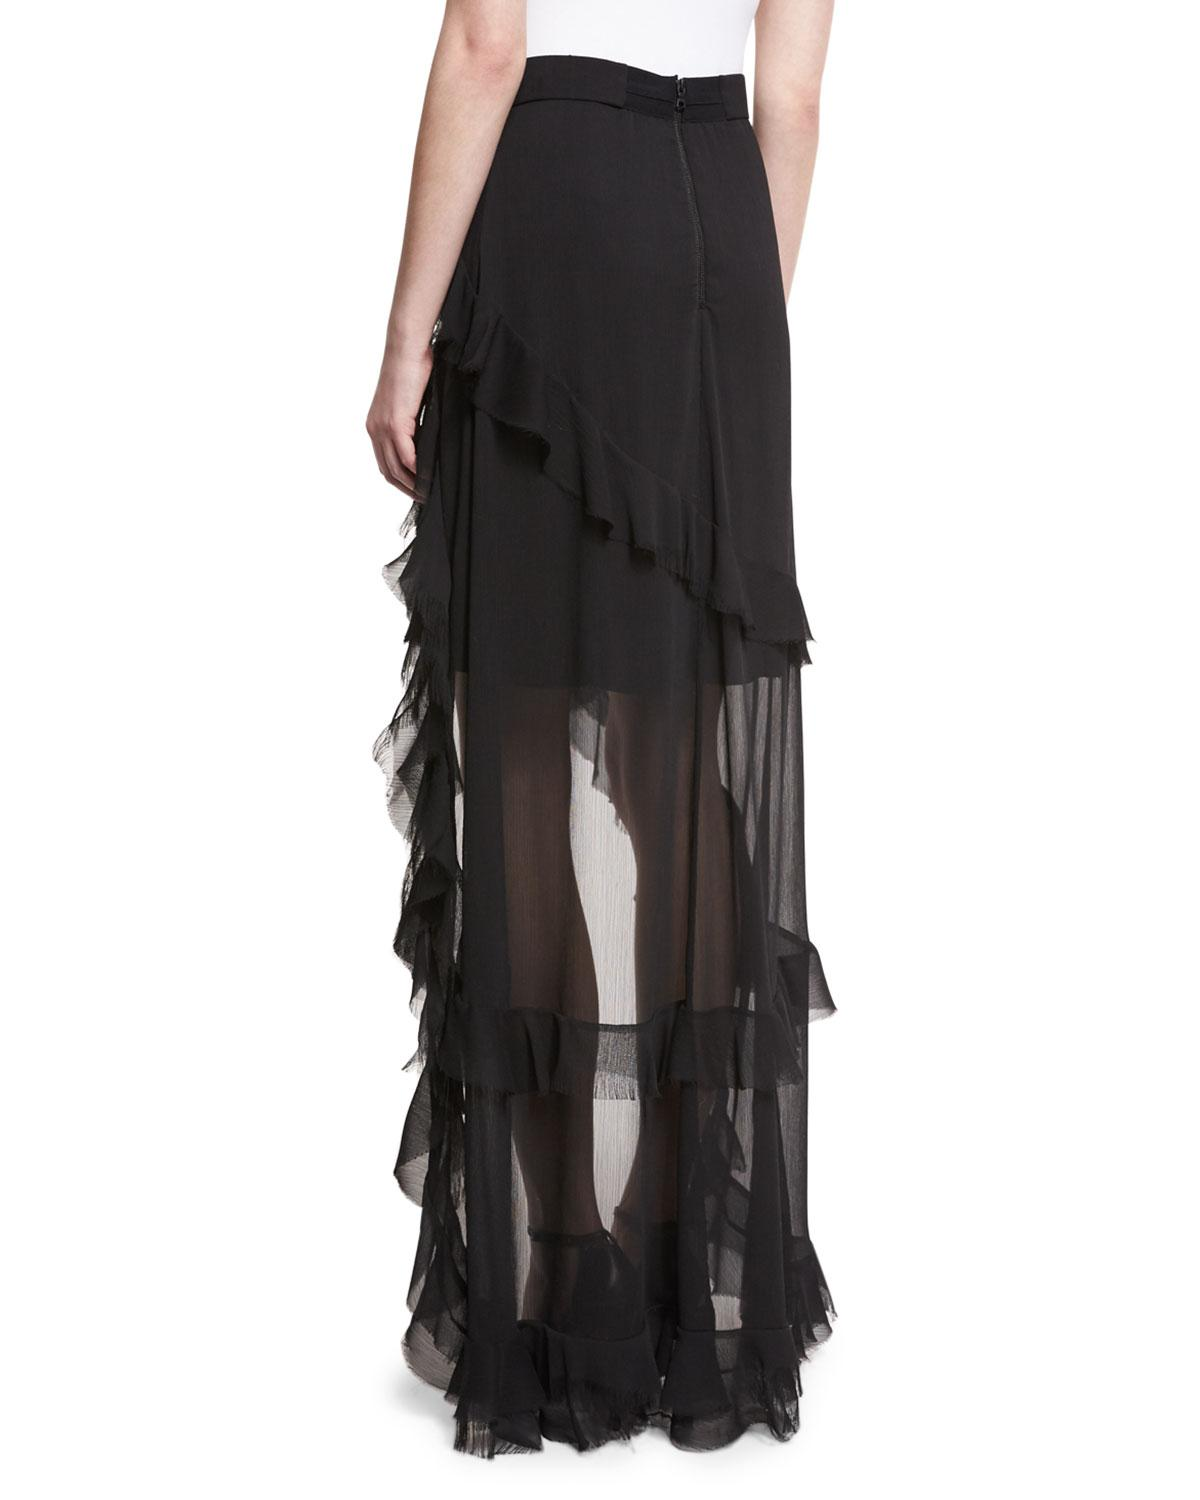 aee35226d4 Alice + Olivia Lavera Layered Ruffle High-low Maxi Skirt in Black - Lyst